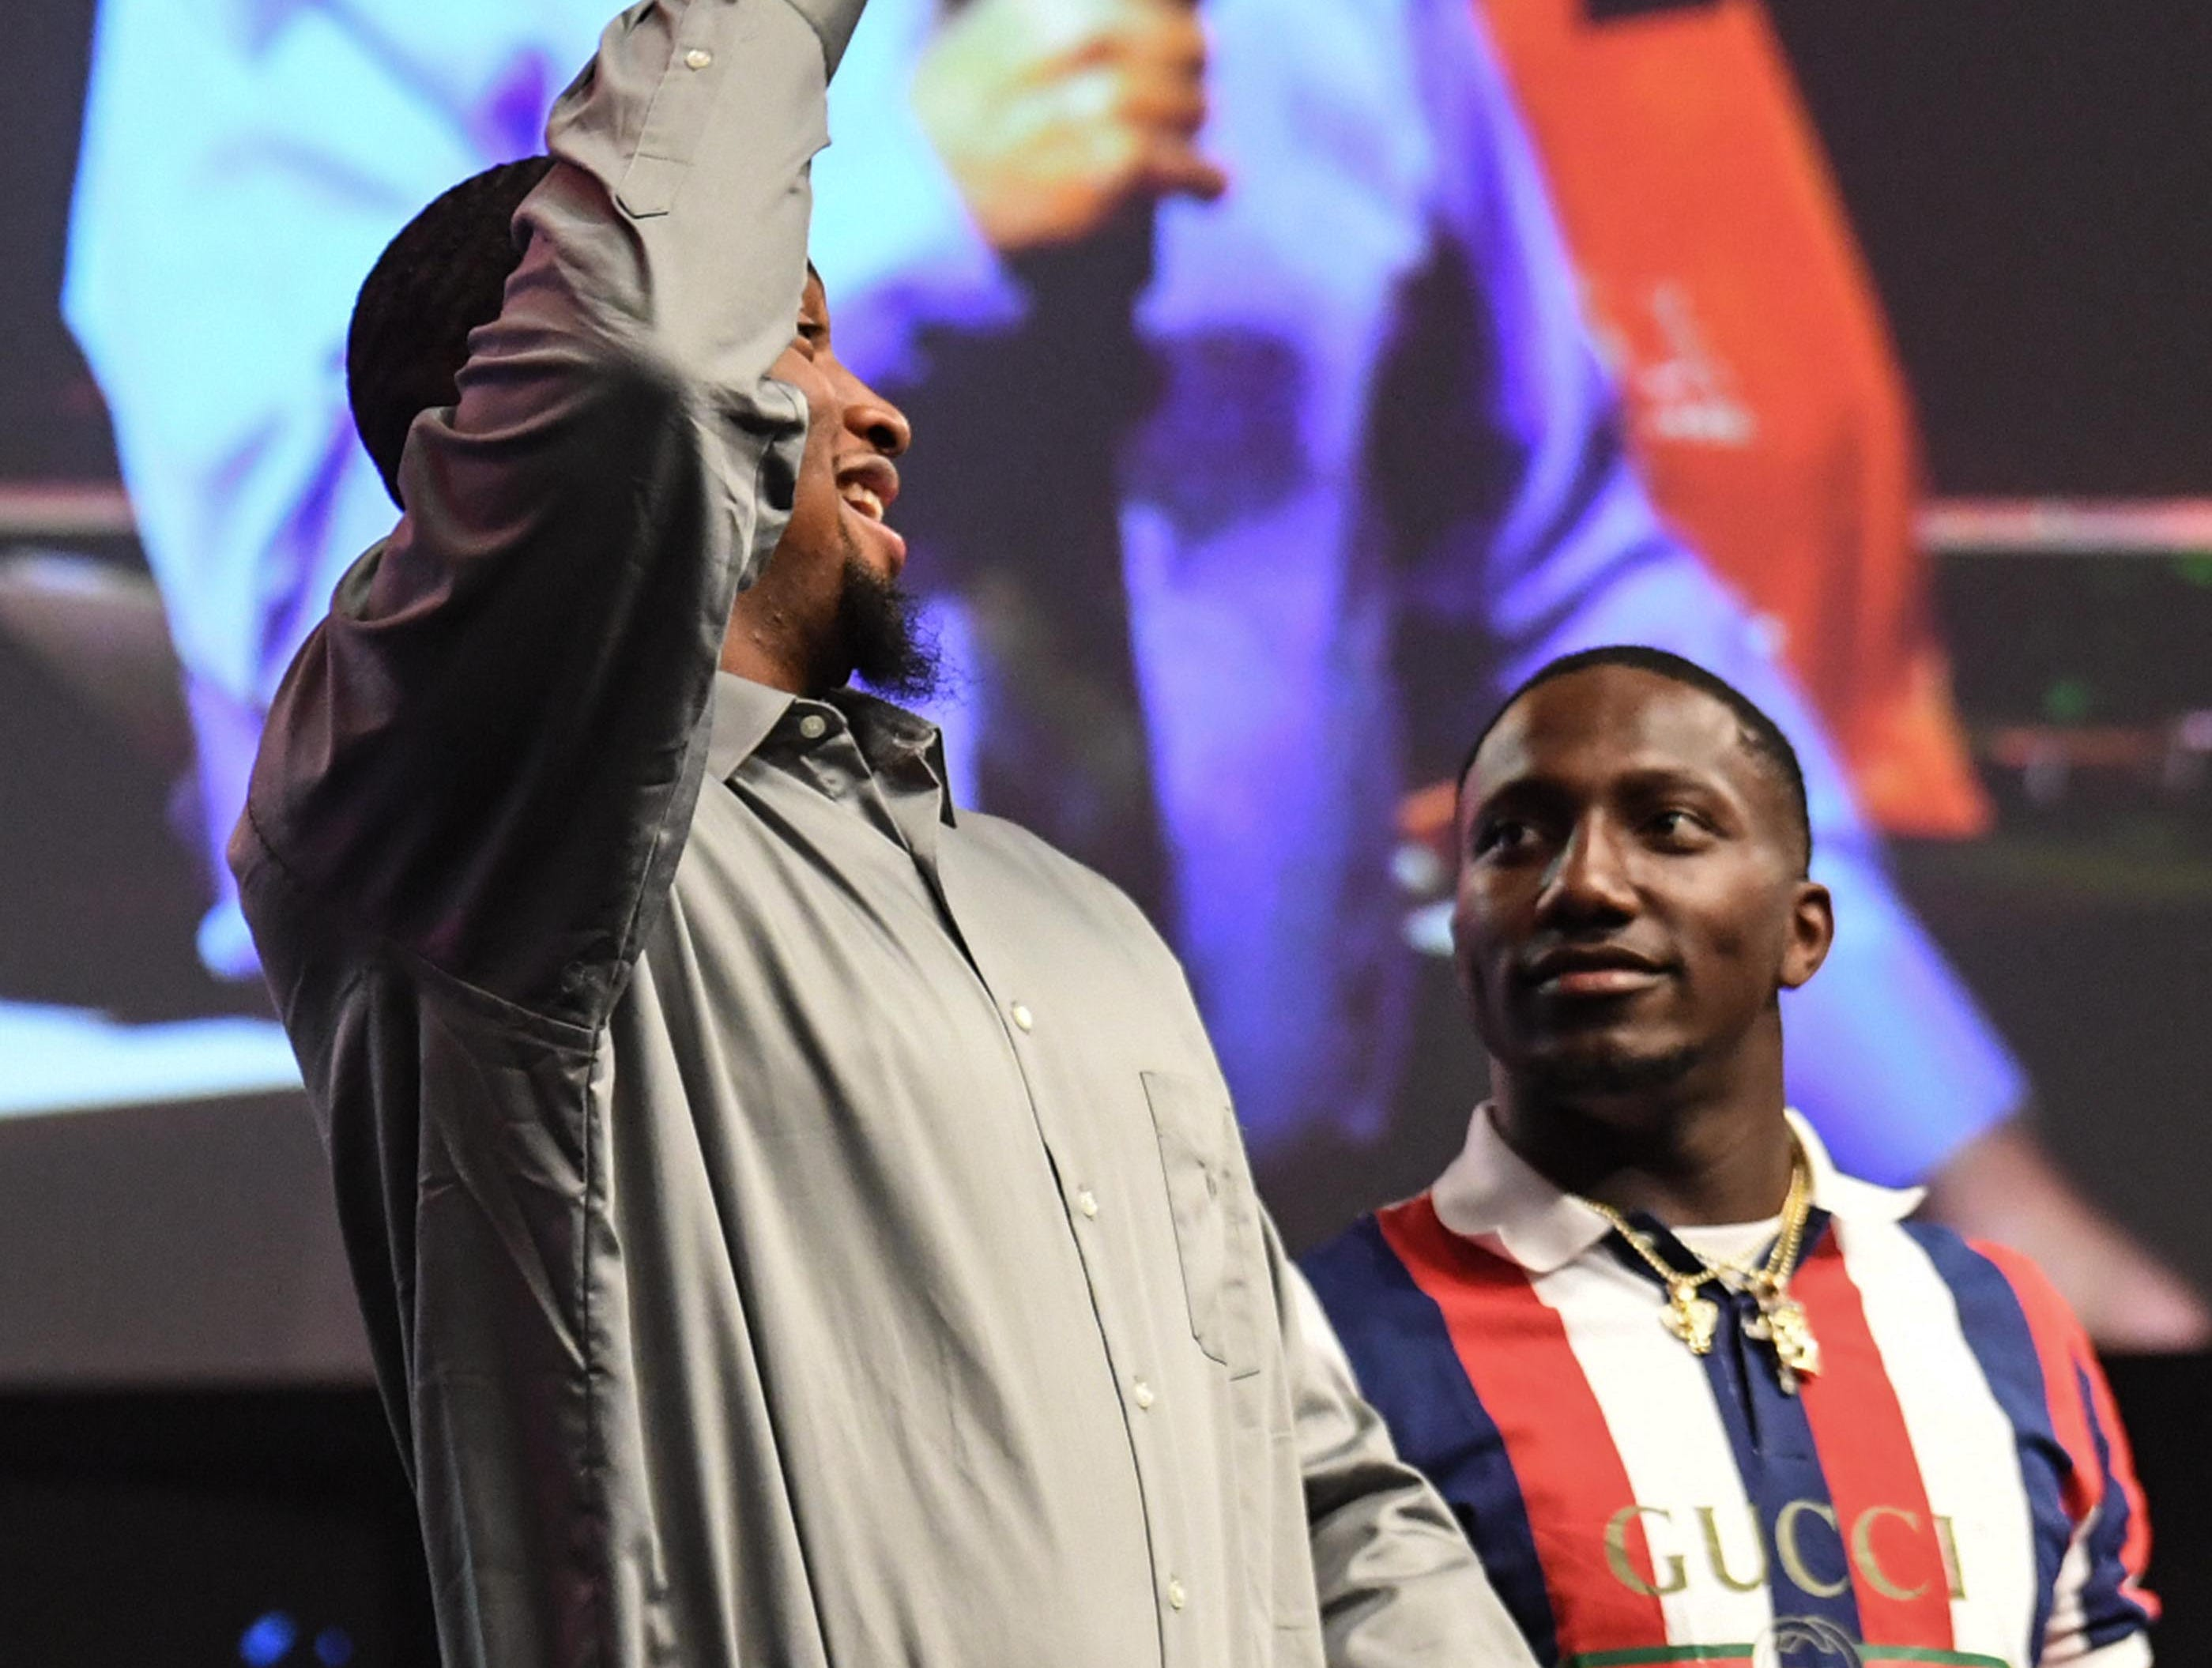 Clelin Ferrell and Deebo Samuel, former Clemson Tigers and South Carolina Gamecocks football players, speak during the Coaches 4 Character event at Relentless Church in Greenville Tuesday.